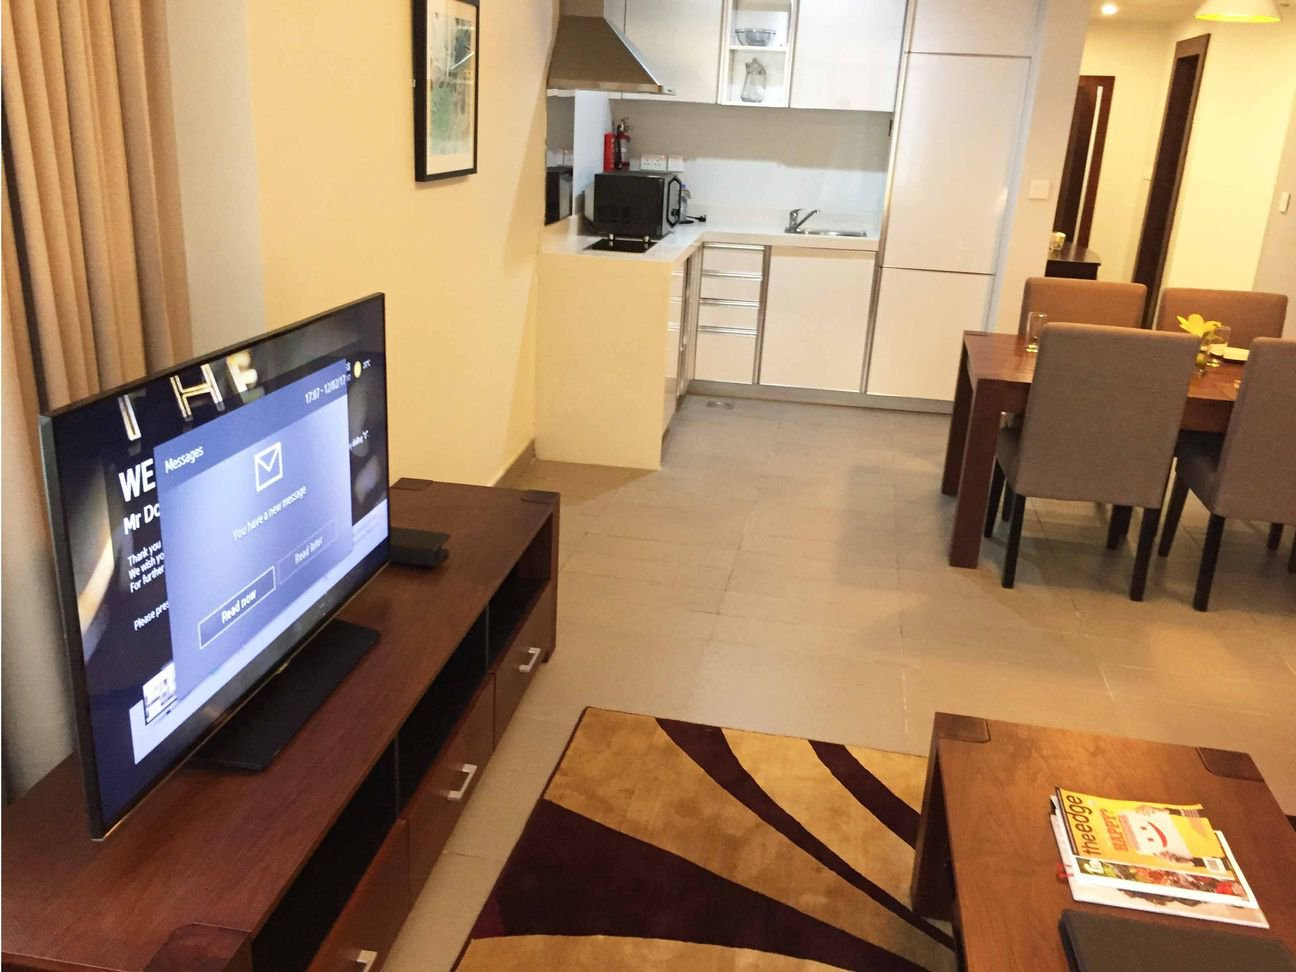 Rental Apartment Doha Rental Apartment Doha Rental Apartment Doha ...